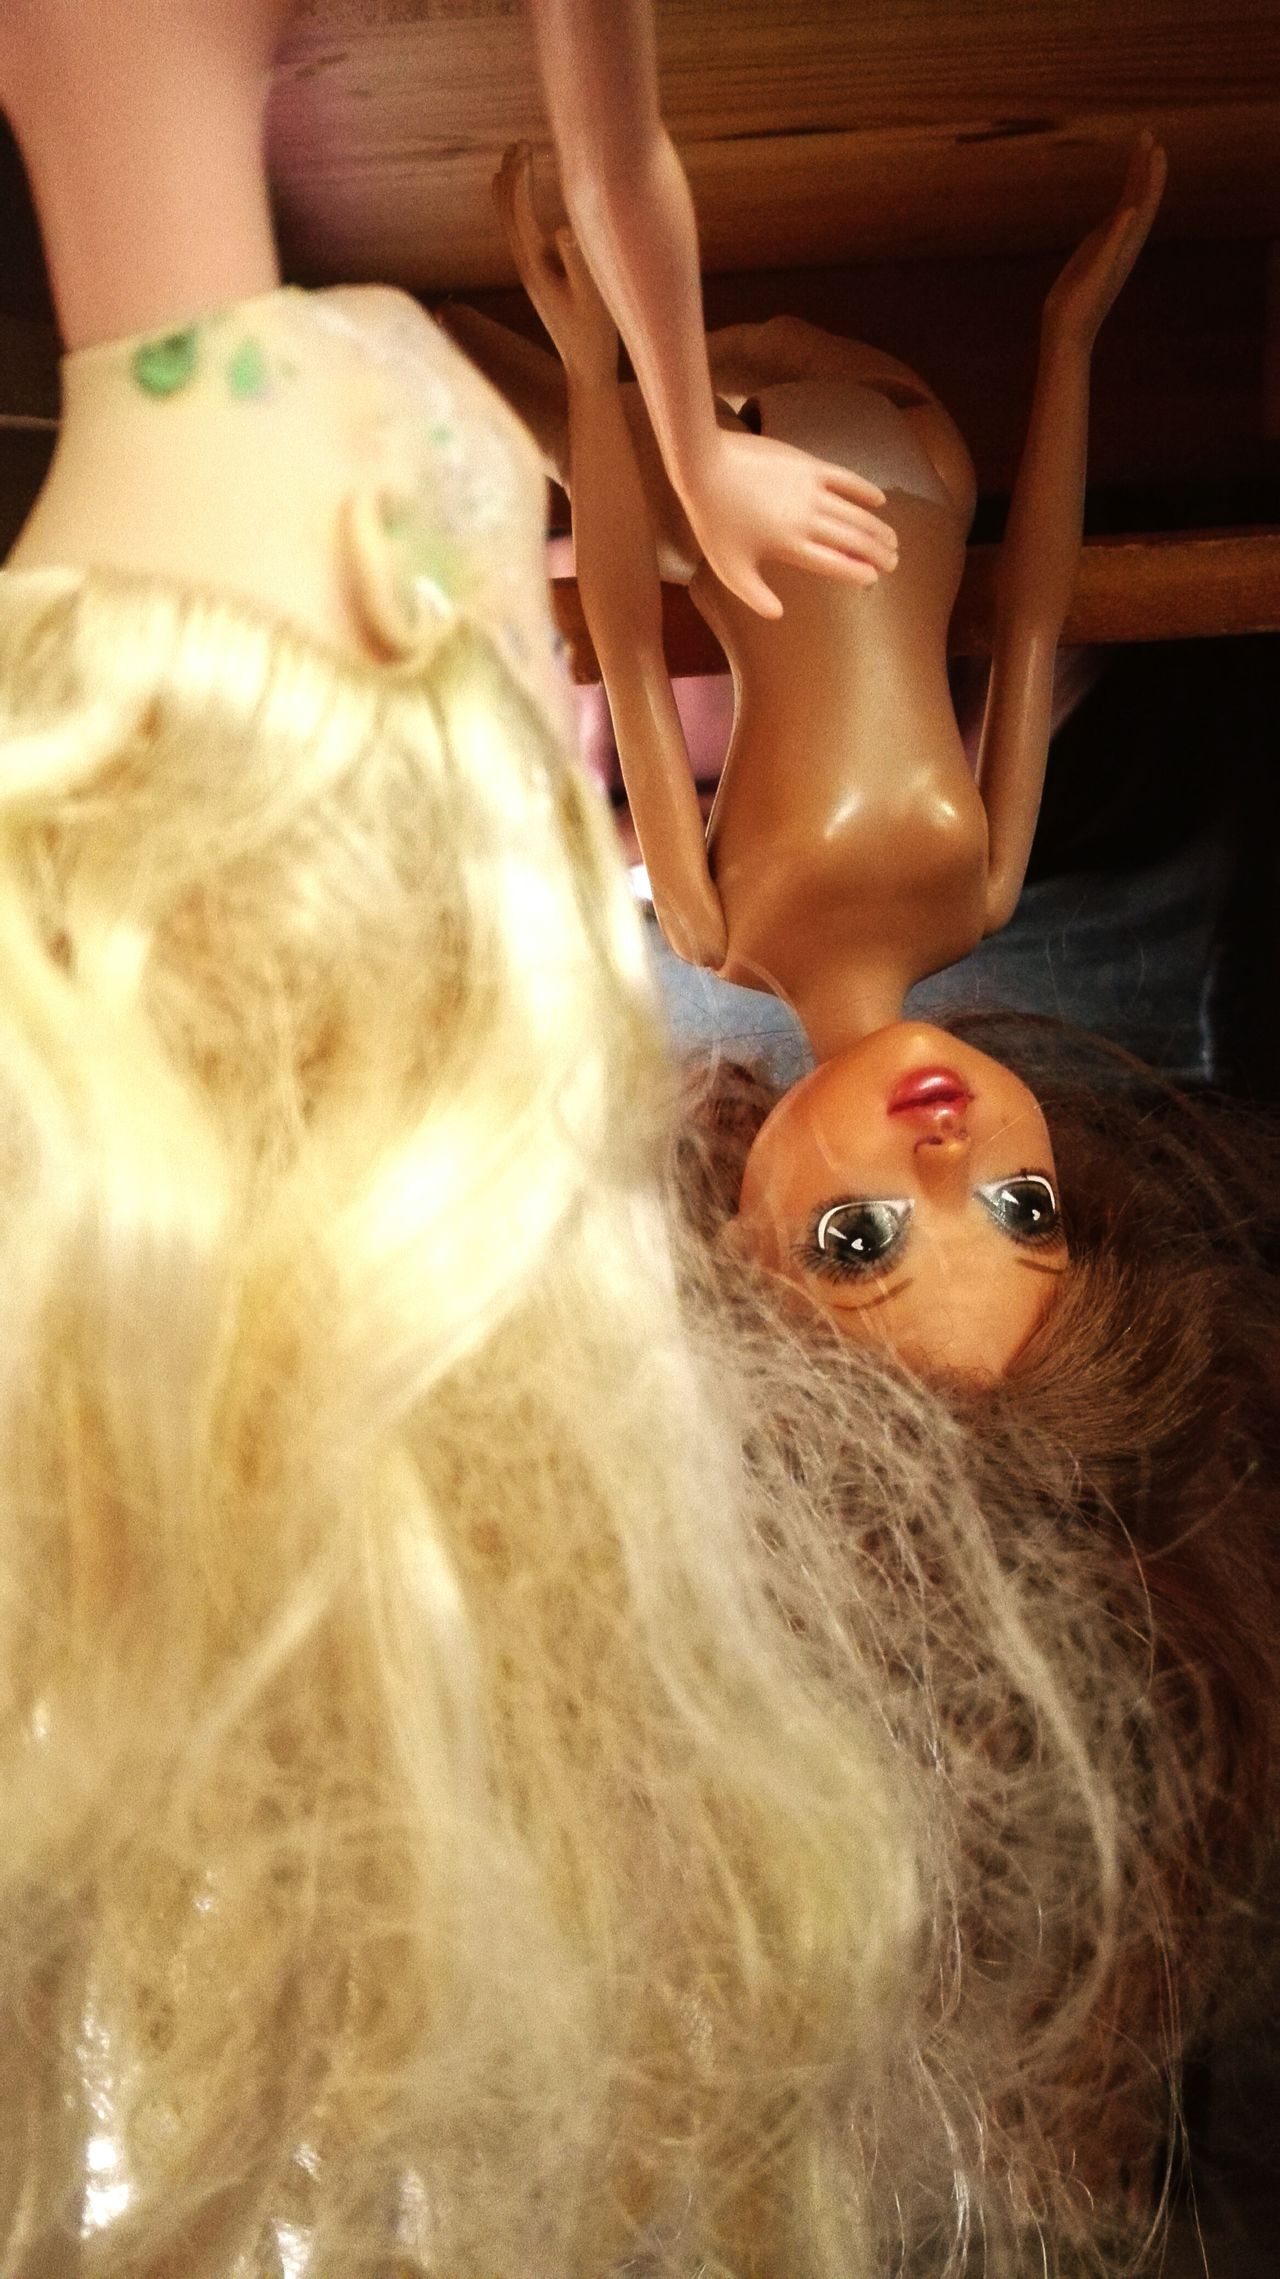 My kid...😂😂😂 those barbies have a hard life here Close-up Doll Photography Barbiephotography Dolls Barbieworld Weirdthingskidsdo Weird Stuff Weirdography Barbiegirl Barbies Pics Barbie<3 Indoor Photography Weird Moments Barbie World Dollsphotography Dolls Kids Being Kids Kids Toys Kids' Artwork